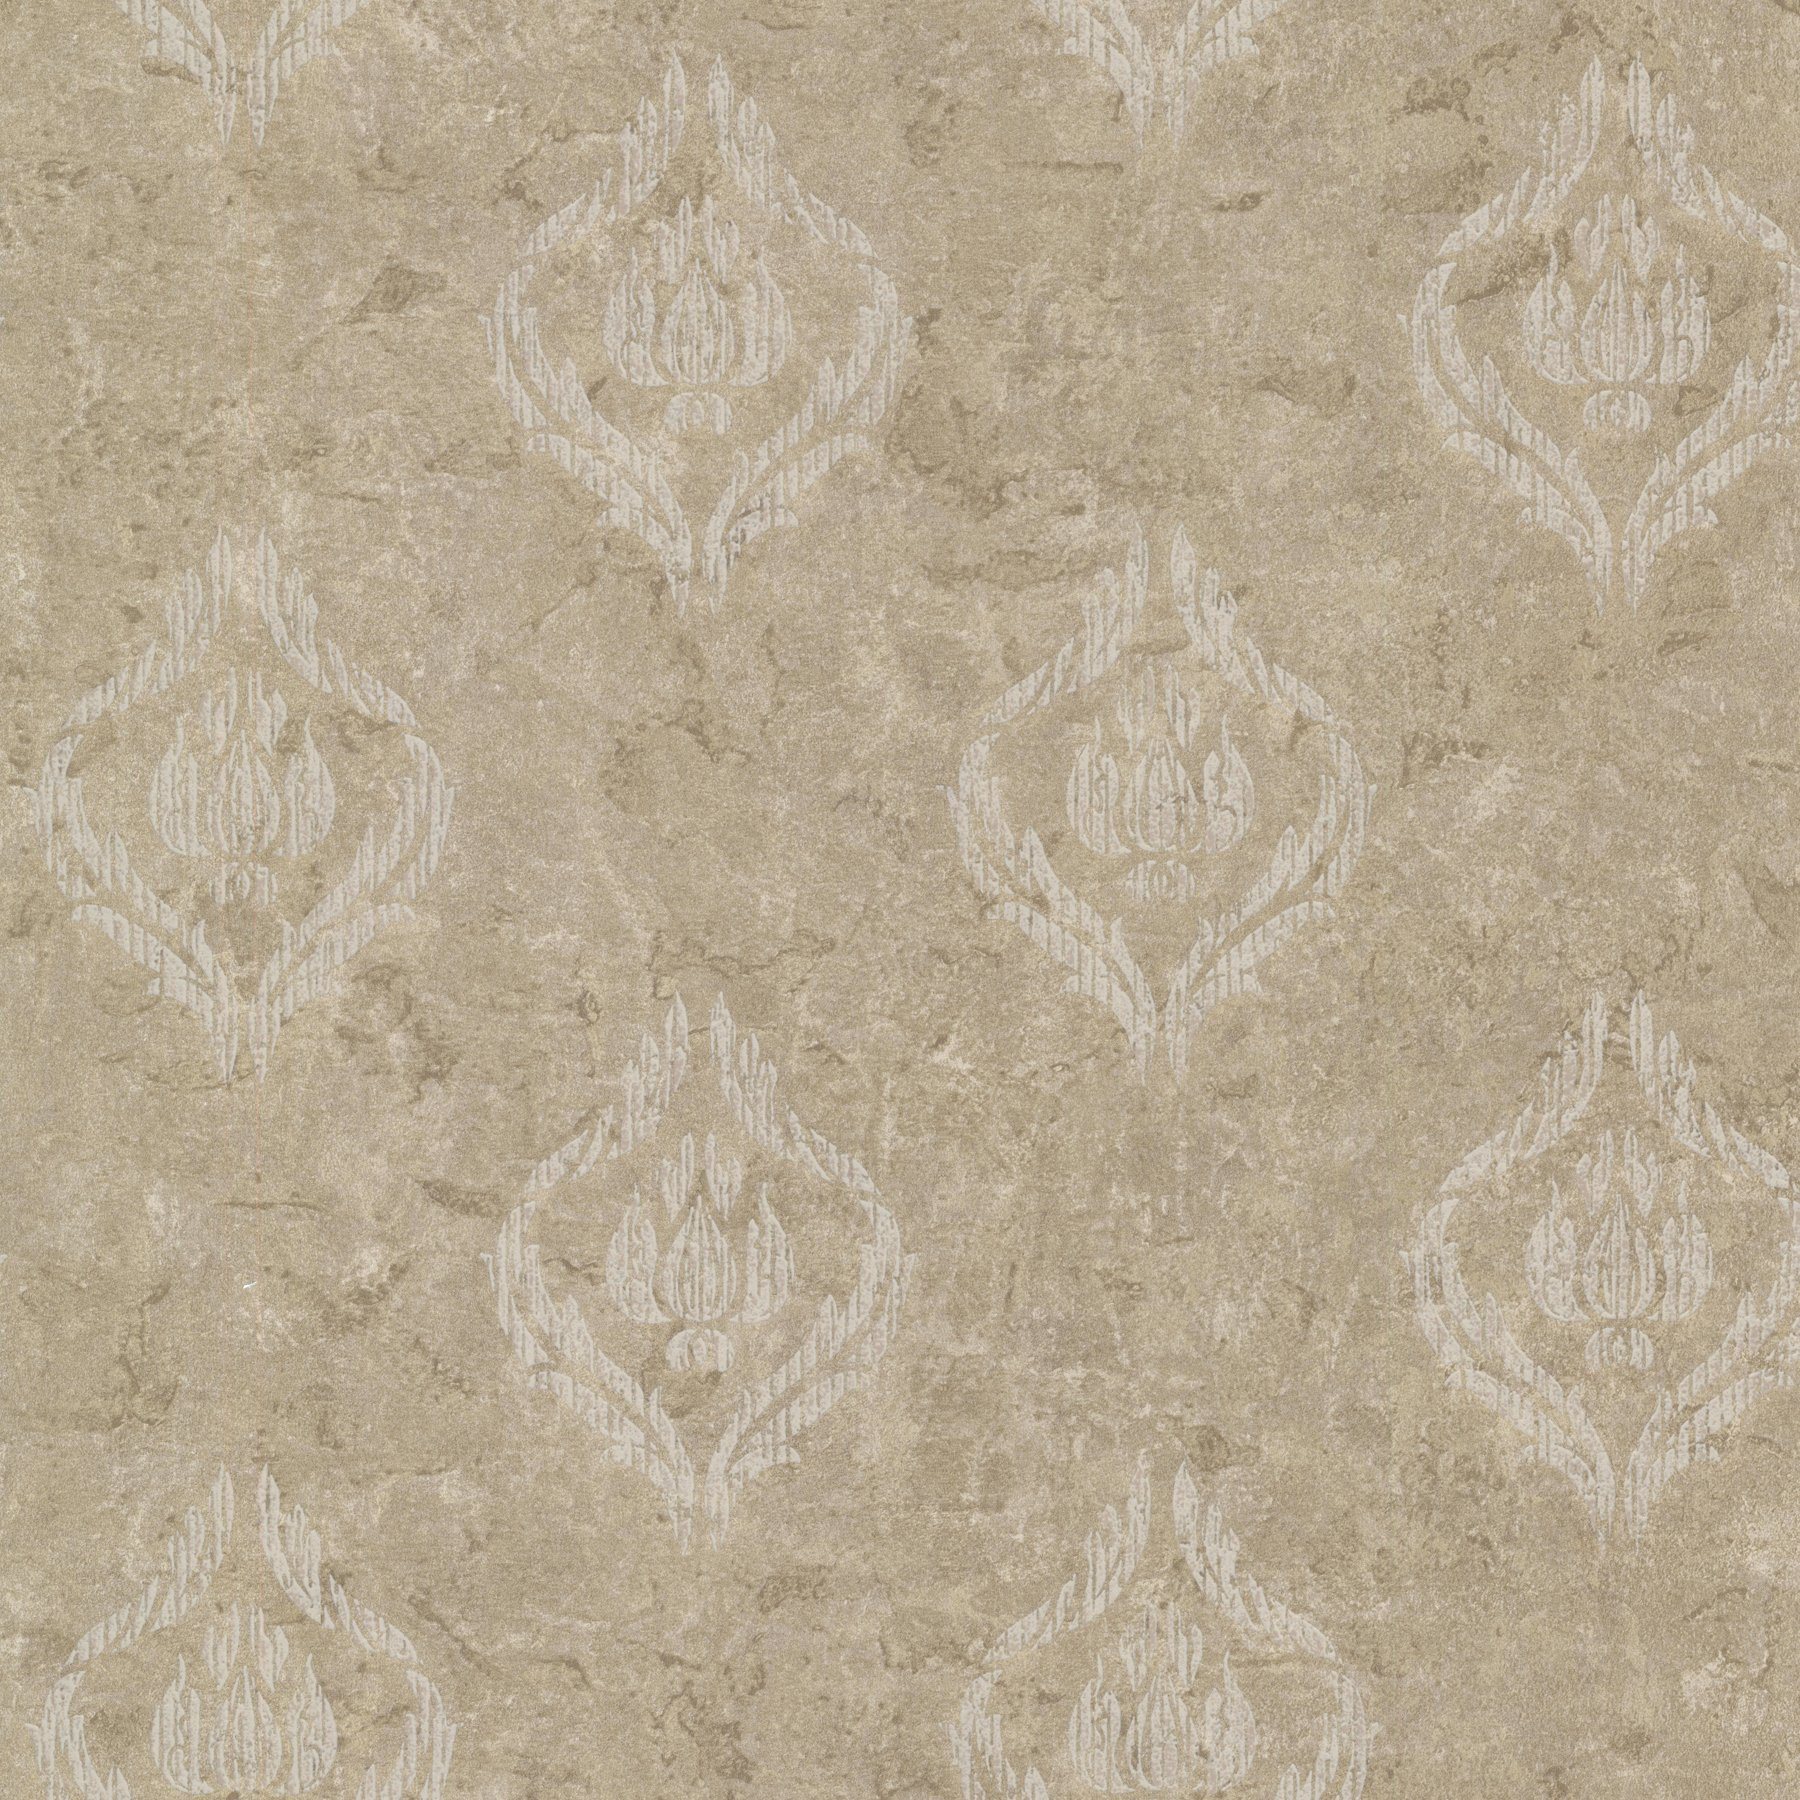 Kenneth James 672-20035 Benza Small Textured Damask Wallpaper, Bronze by Kenneth James